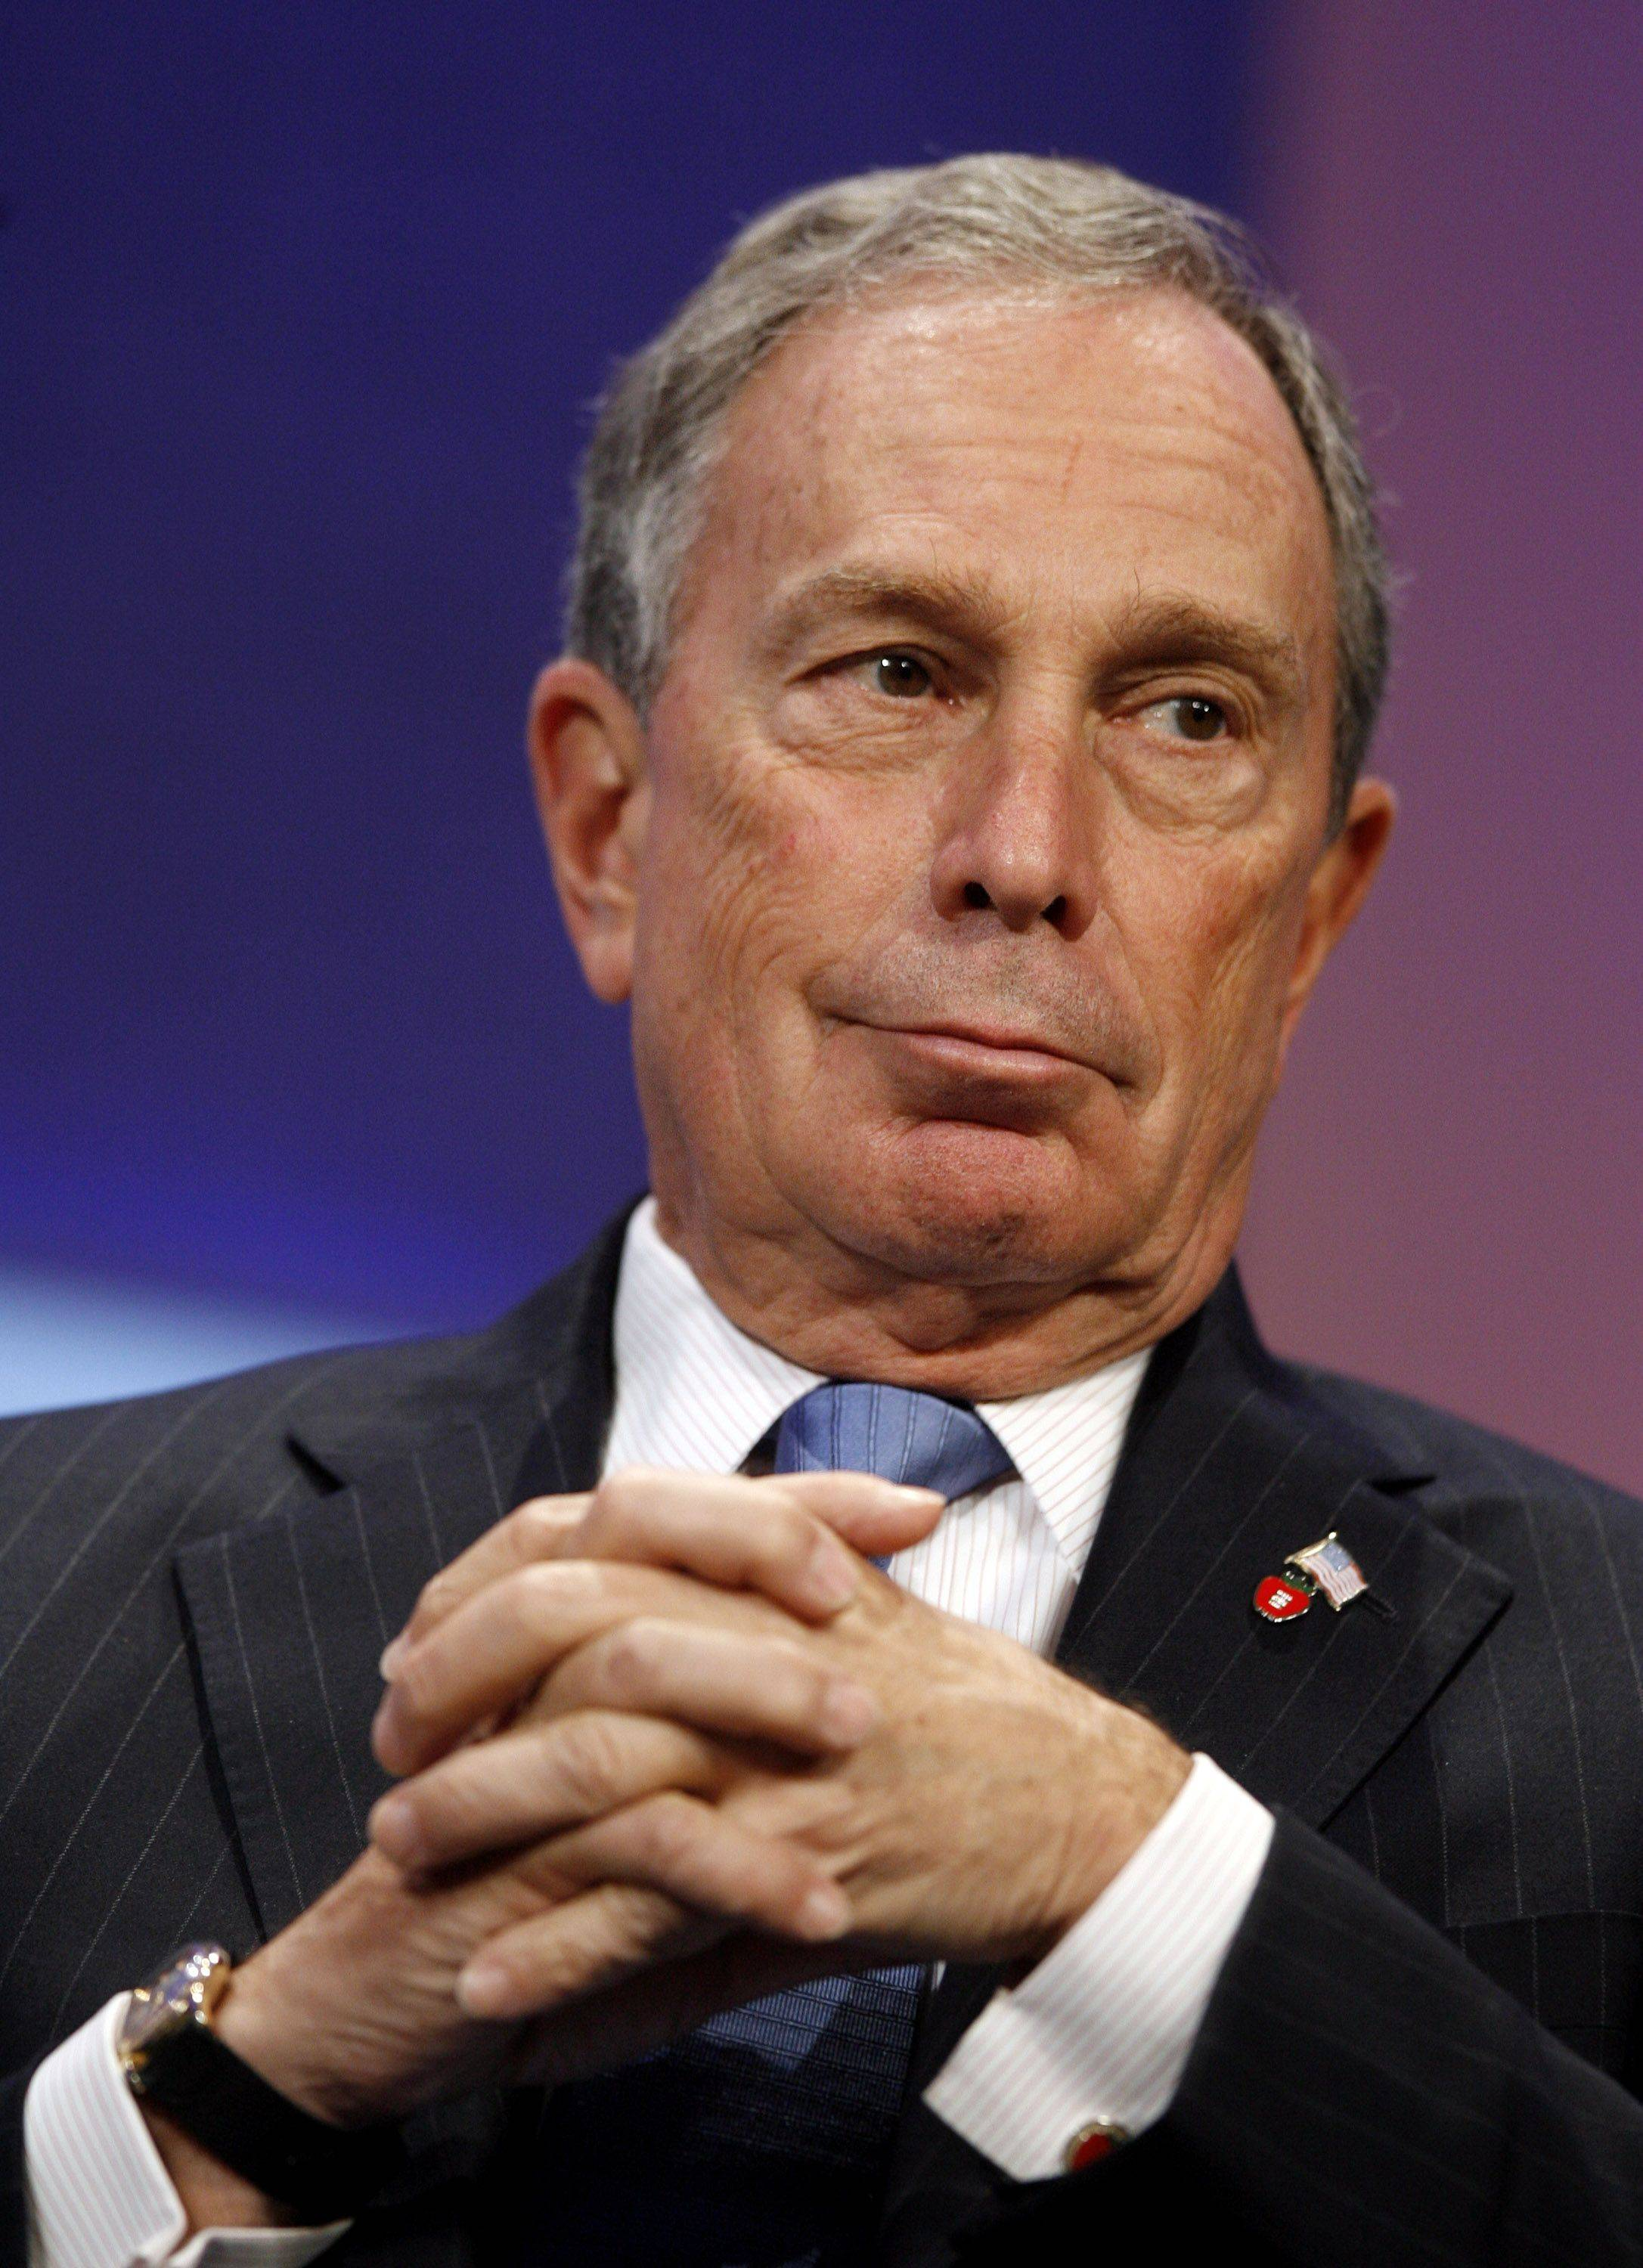 New York Mayor Michael Bloomberg�s time in city hall will be book-ended by World Trade Center milestones — the attacks weeks before his election, and the planned opening of the building once called the Freedom Tower shortly before he leaves office in 2013.